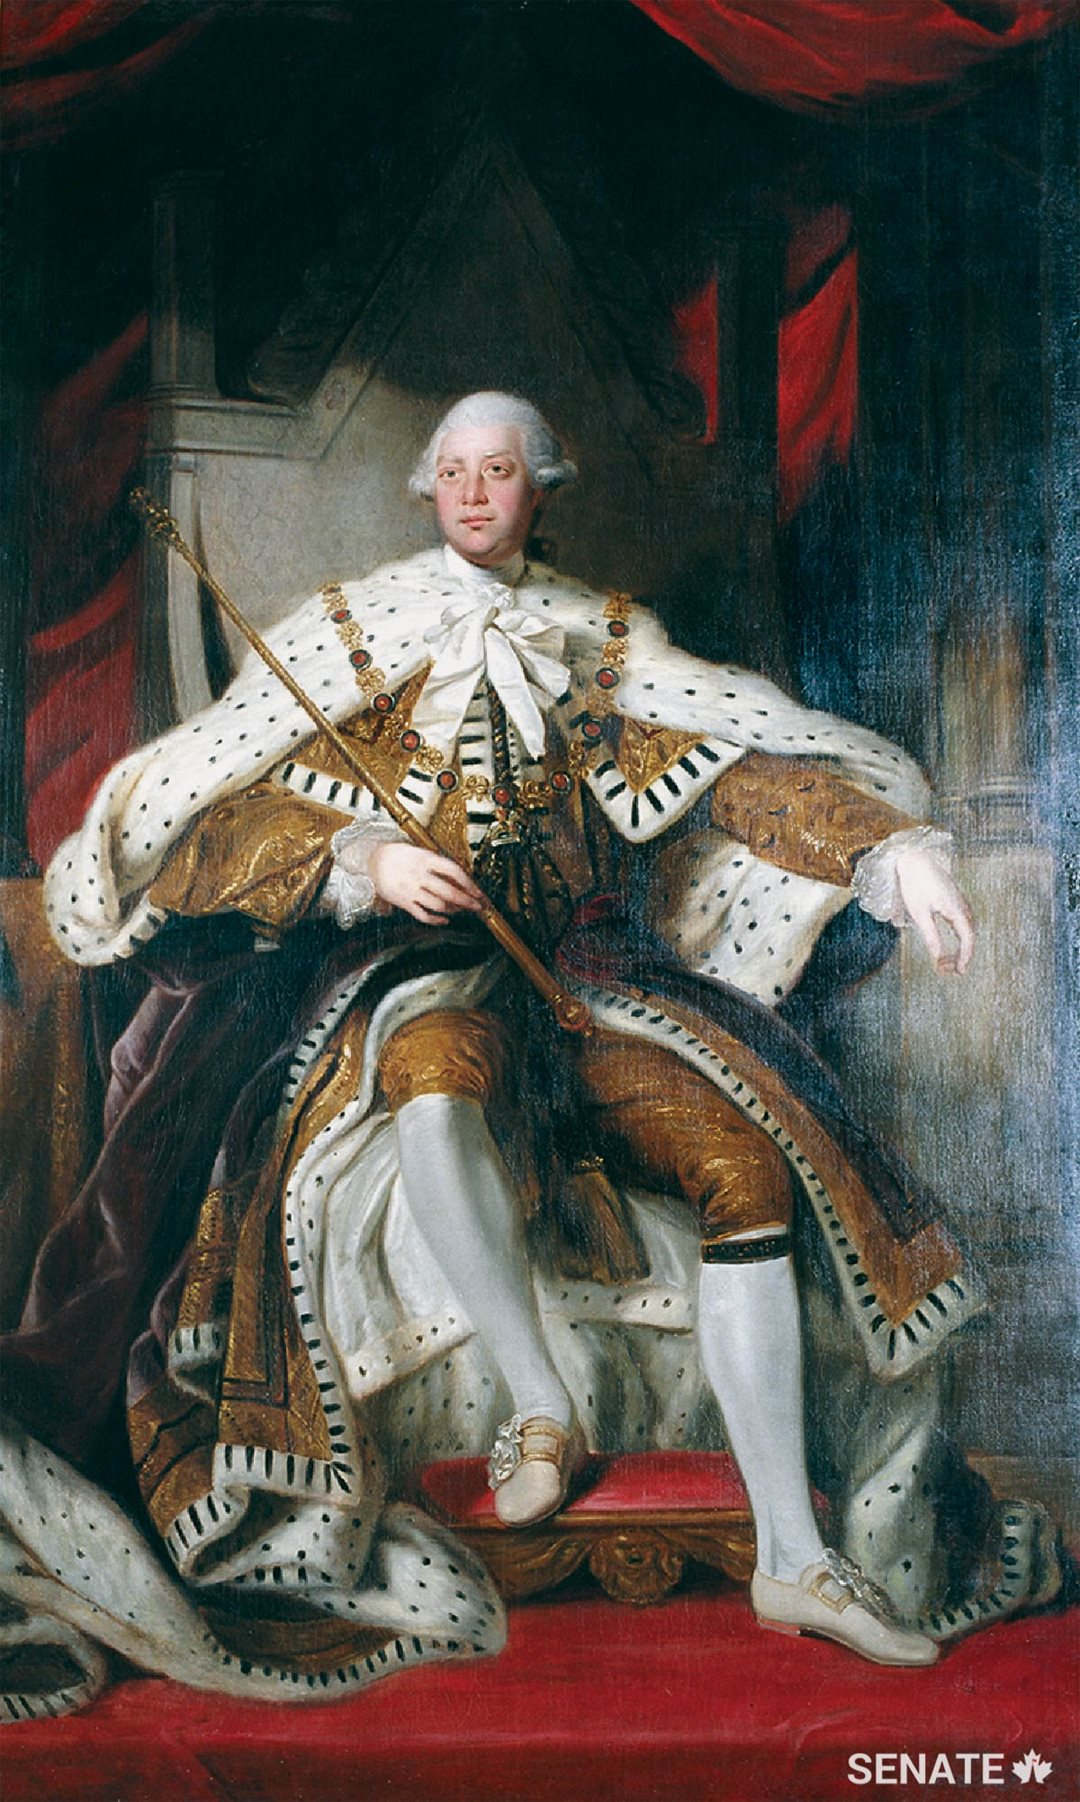 George III's portrait hangs on the south wall of the foyer. George had a combative relationship with his official portraitist, Joshua Reynolds. Despite their personal differences, Reynolds depicted the King with the grandeur and bearing of an ideal Enlightenment monarch.